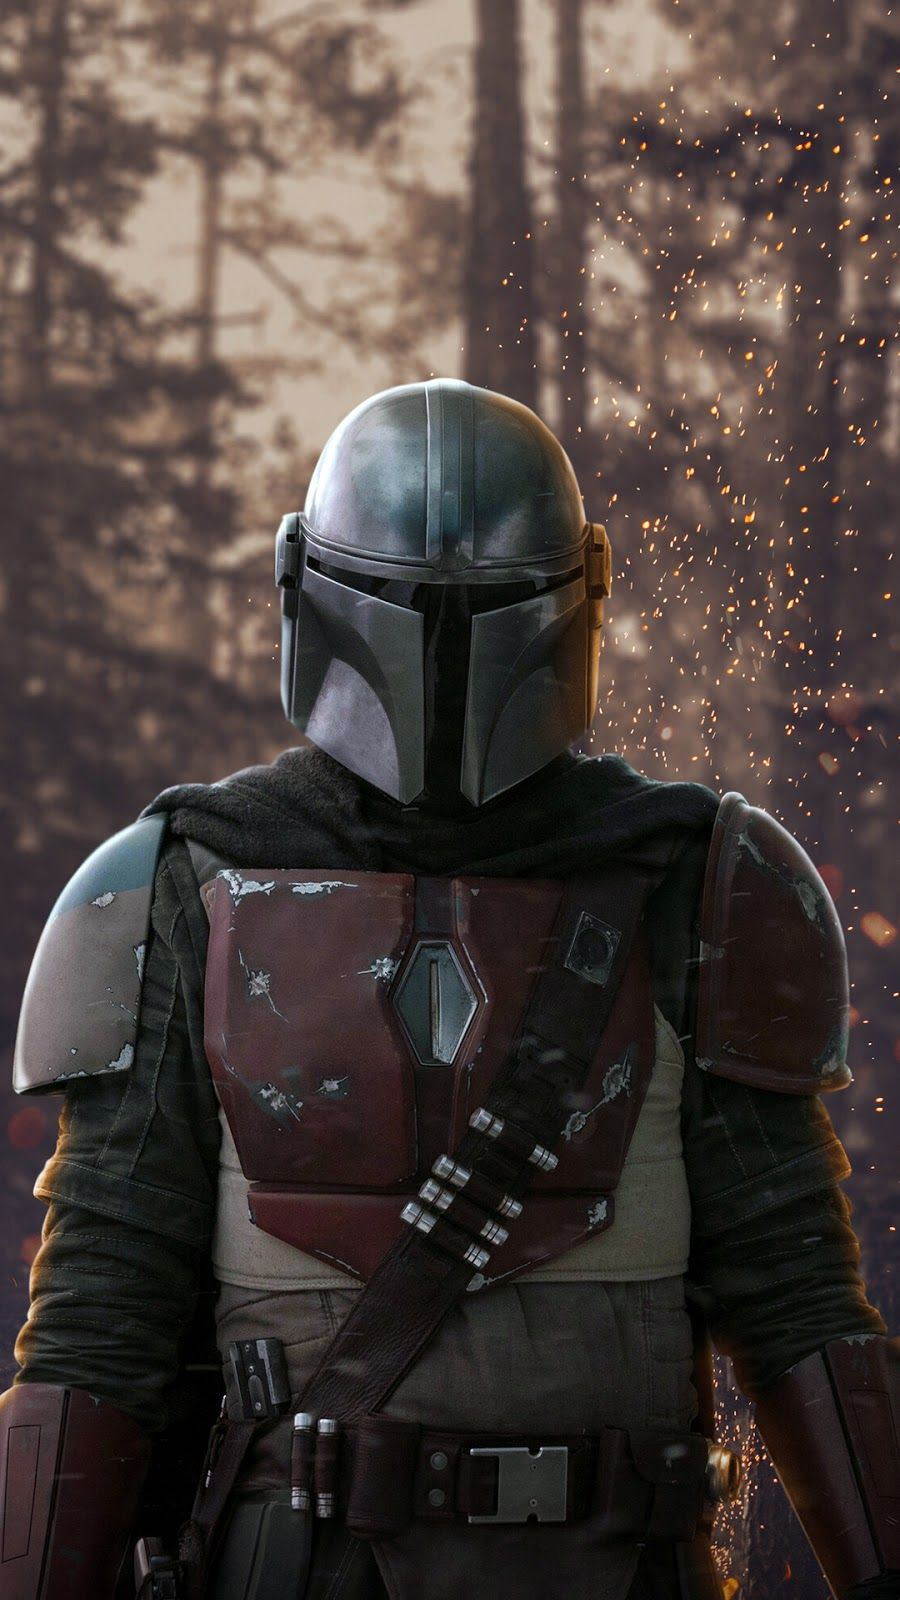 The Mandalorian Background Wallpapers Heroscreen Star Wars Images Star Wars Pictures Star Wars Trooper